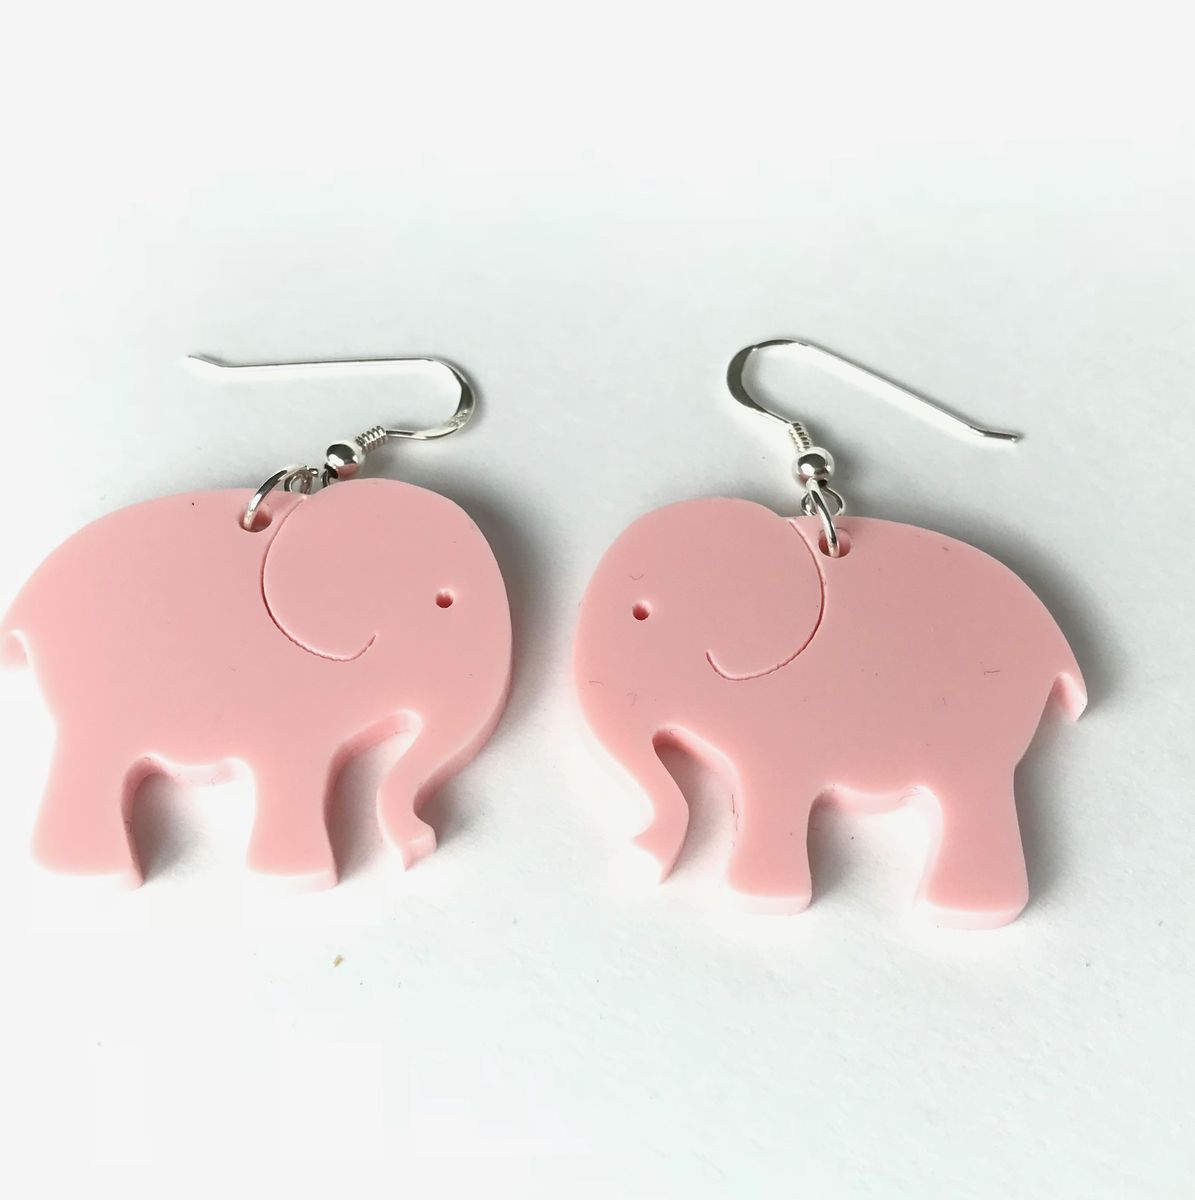 Pink elephant statement earrings FREEPOST UK - product images  of